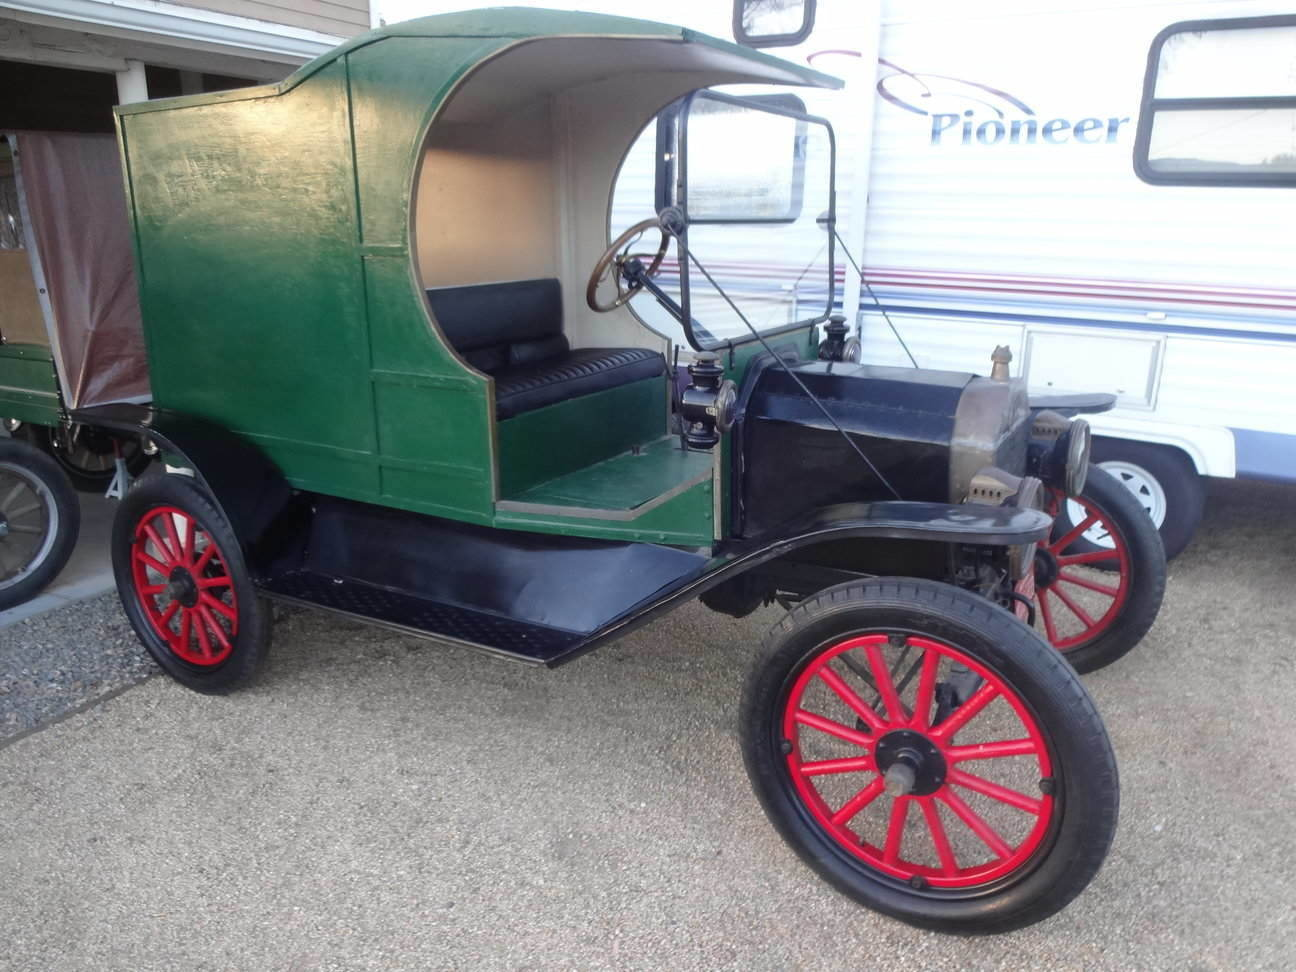 1913 Pie Wagon I just purchased on MTFCA